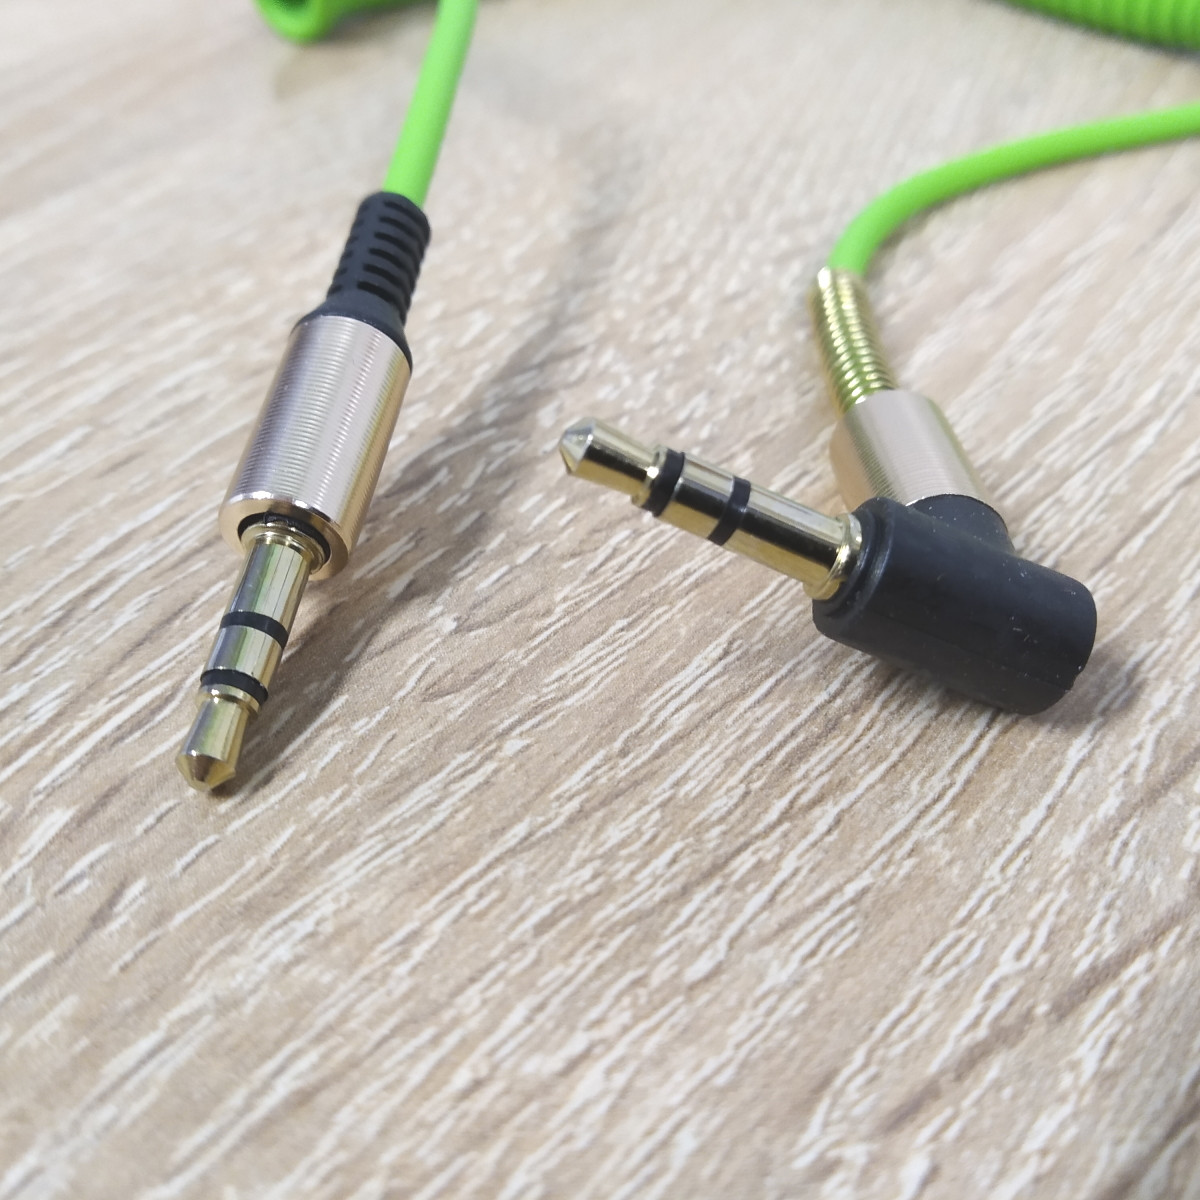 Xinphone Аудио кабель 3.5 aux audio cable Green